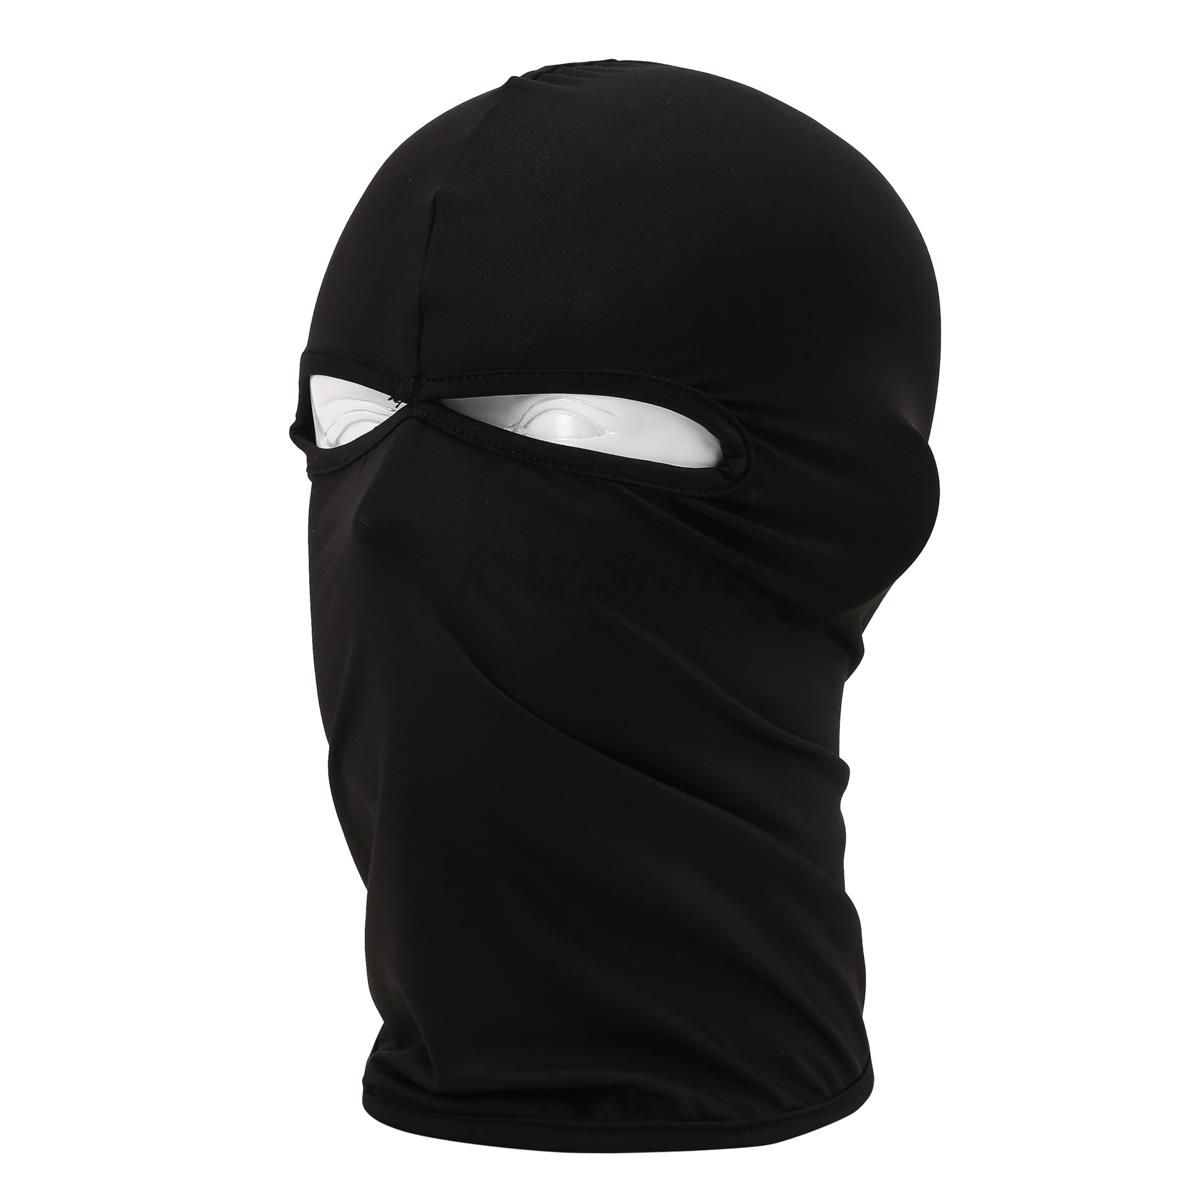 2017 Spring New 2 Hole Balaclava Hat Hunting Motorcycle Cycling Headwear  Military Tactical War Game face Full Mask Black chief sw2104 skull style full face mask for war game cs black